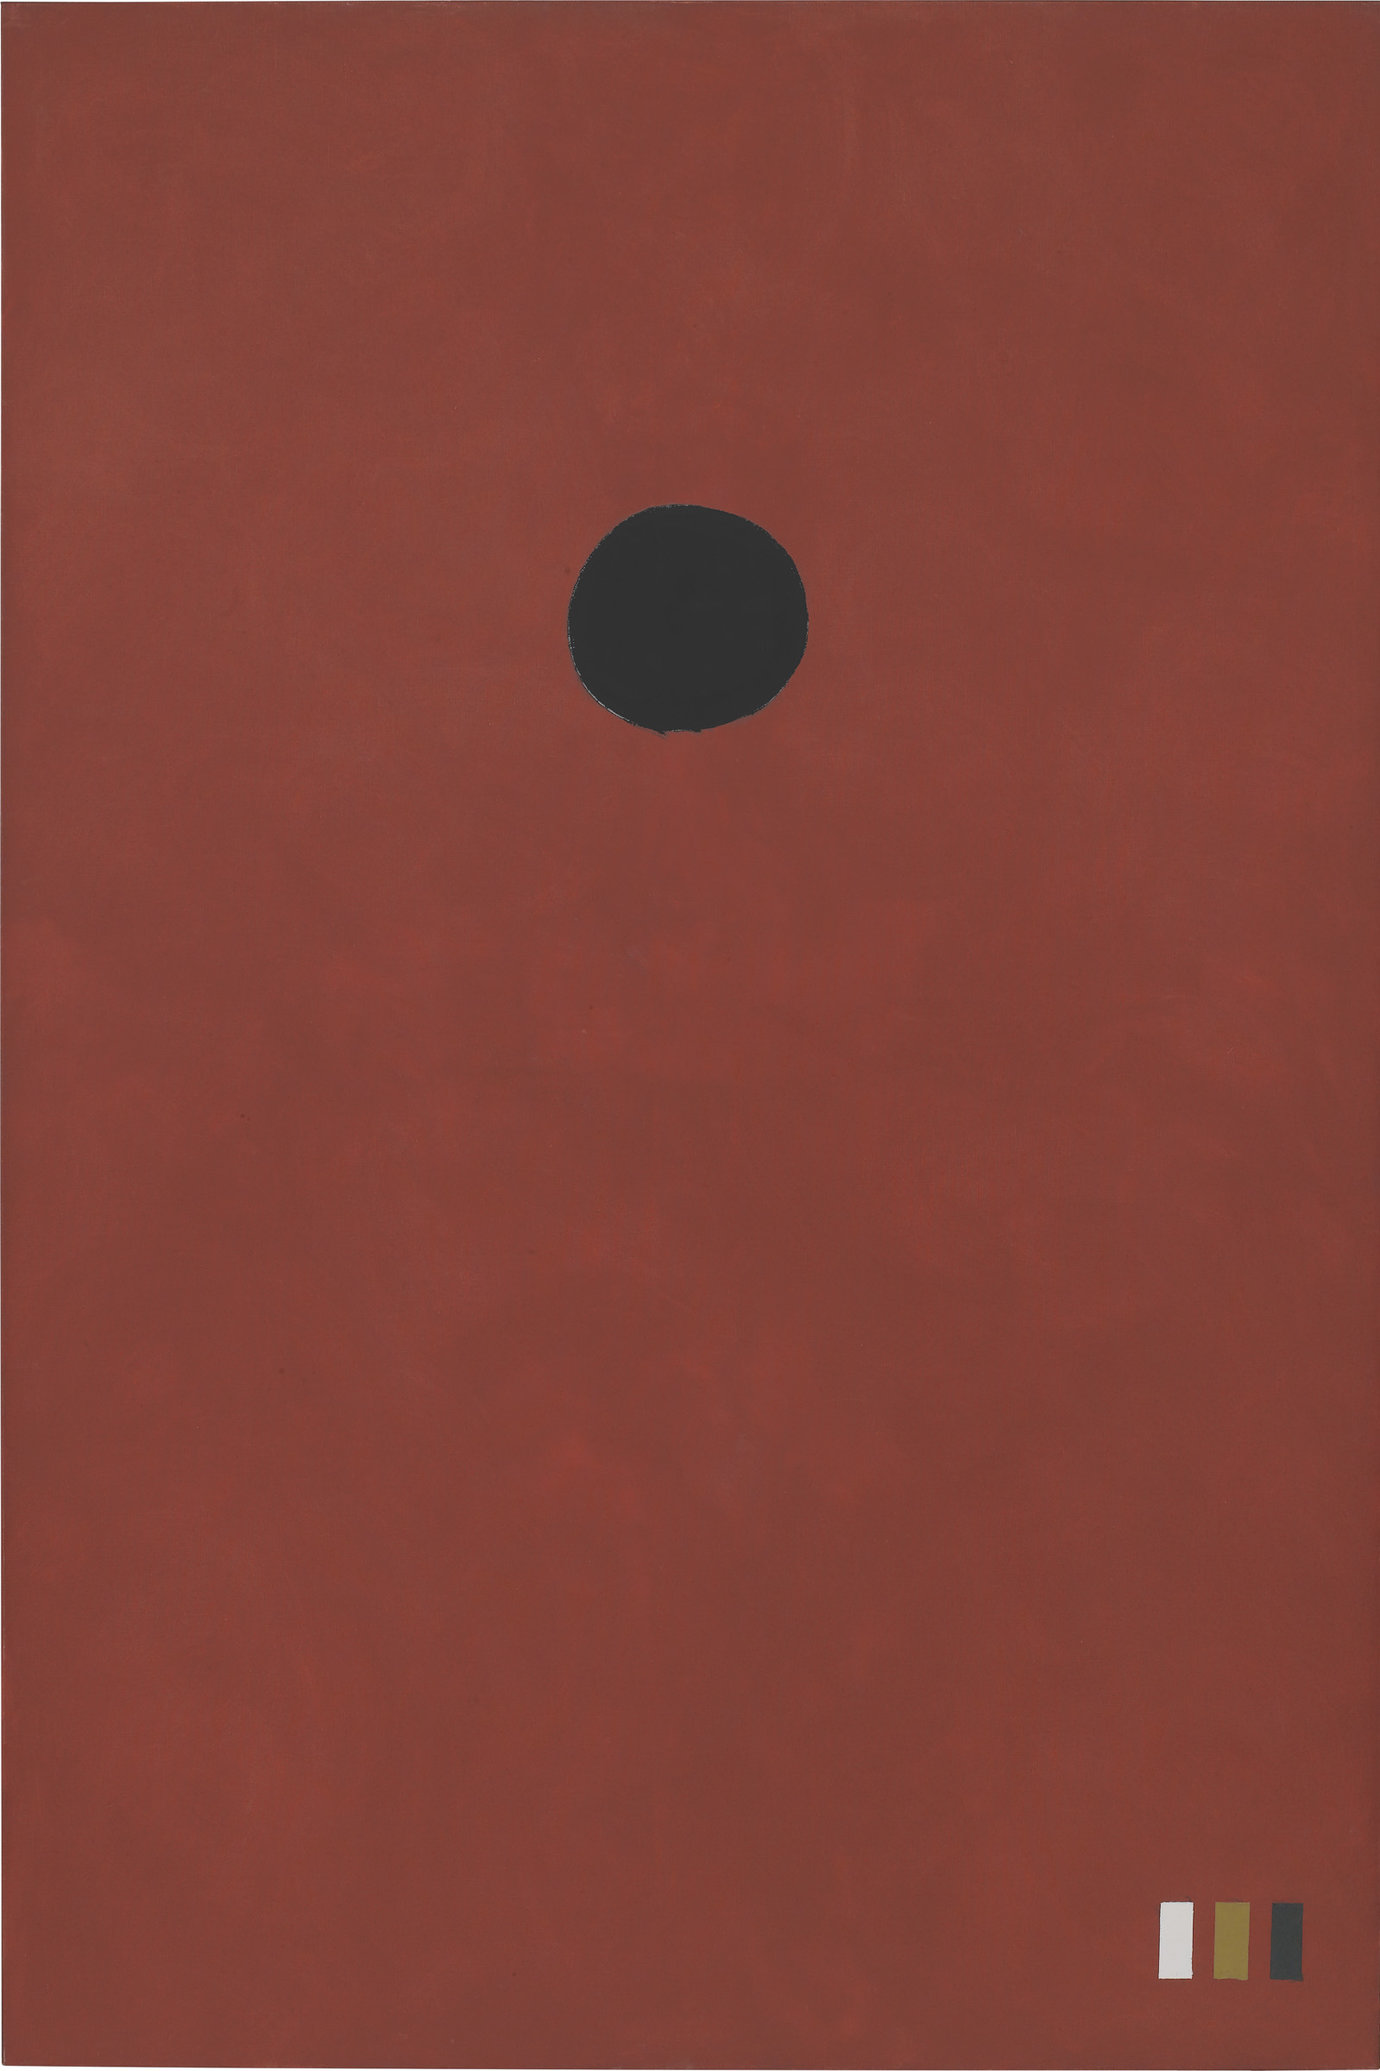 ", 1972. Oil on linen, 90"" x 60"" (228.6 cm x 152.4 cm)."